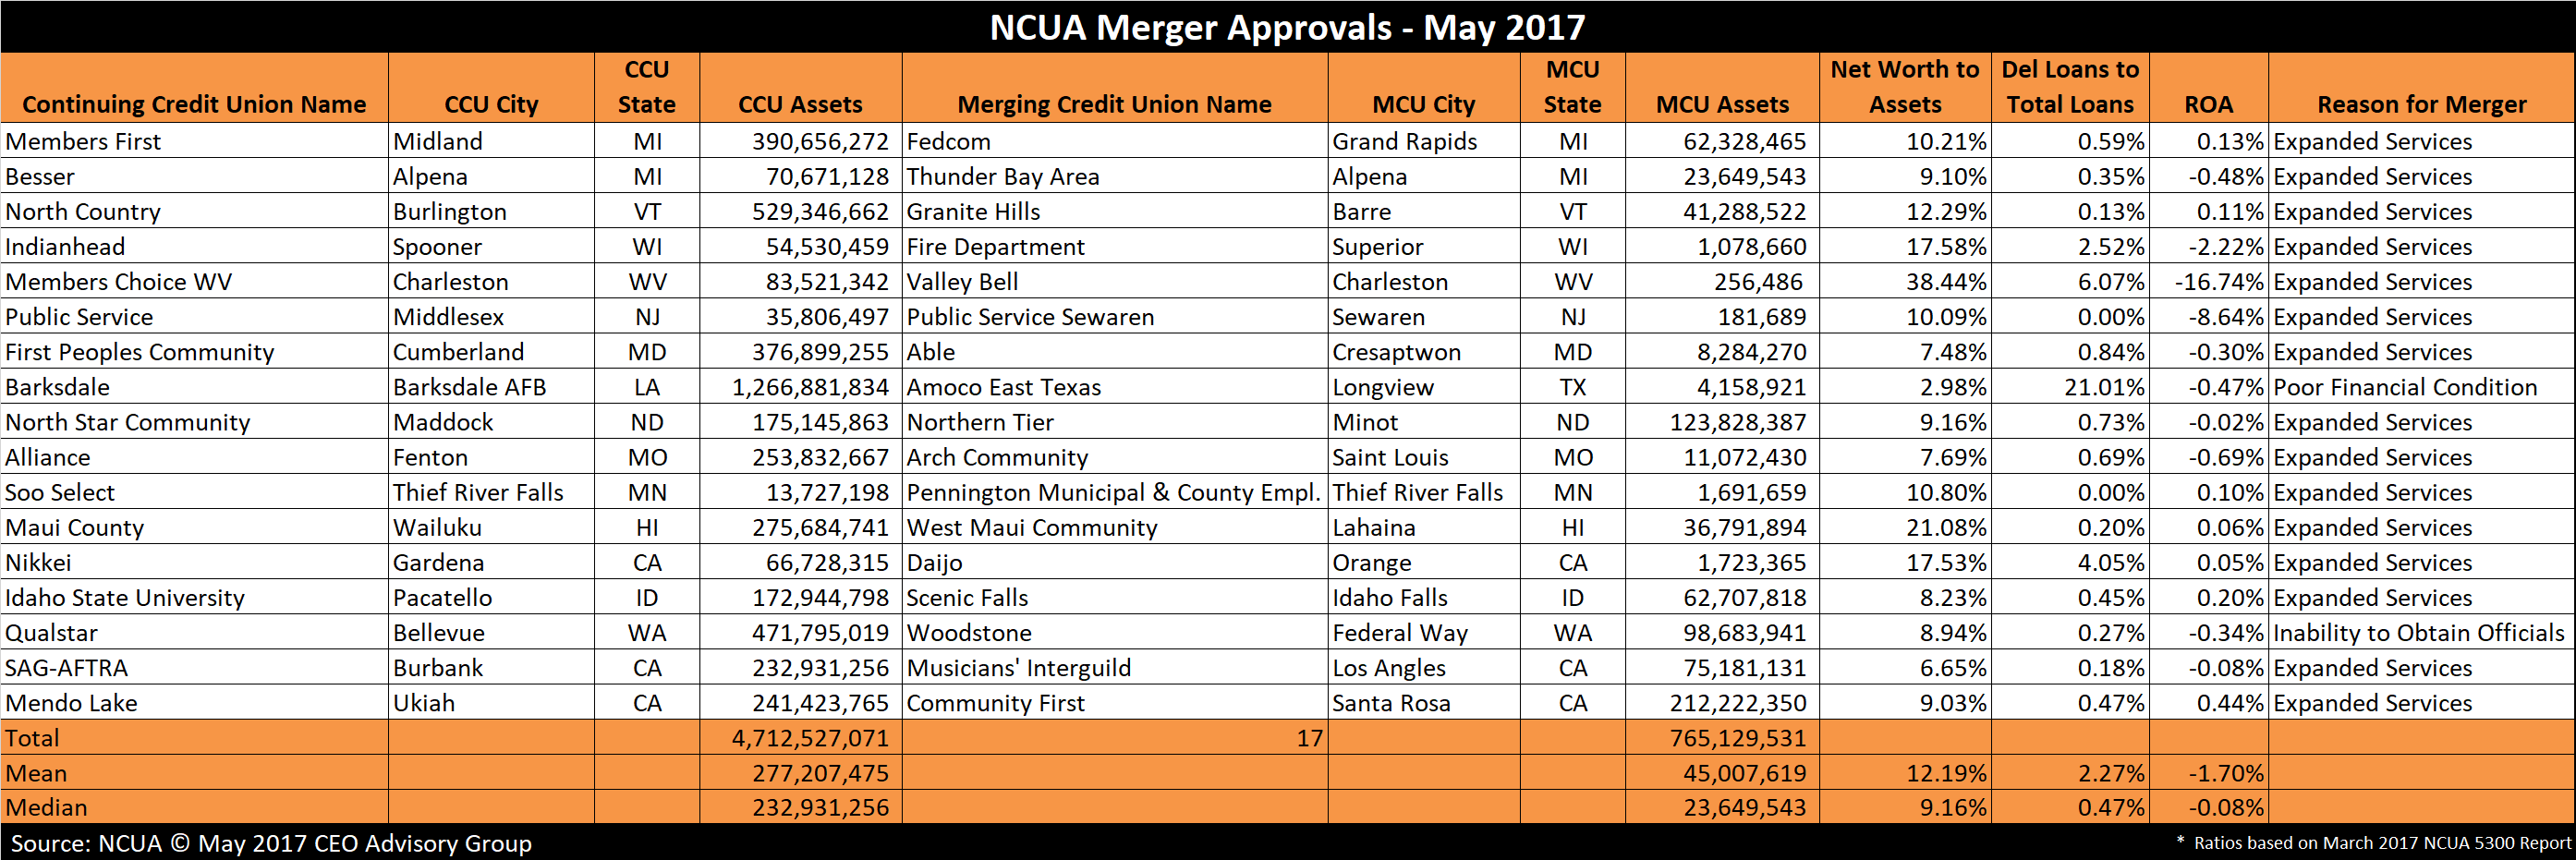 Credit Union Mergers - May 2017